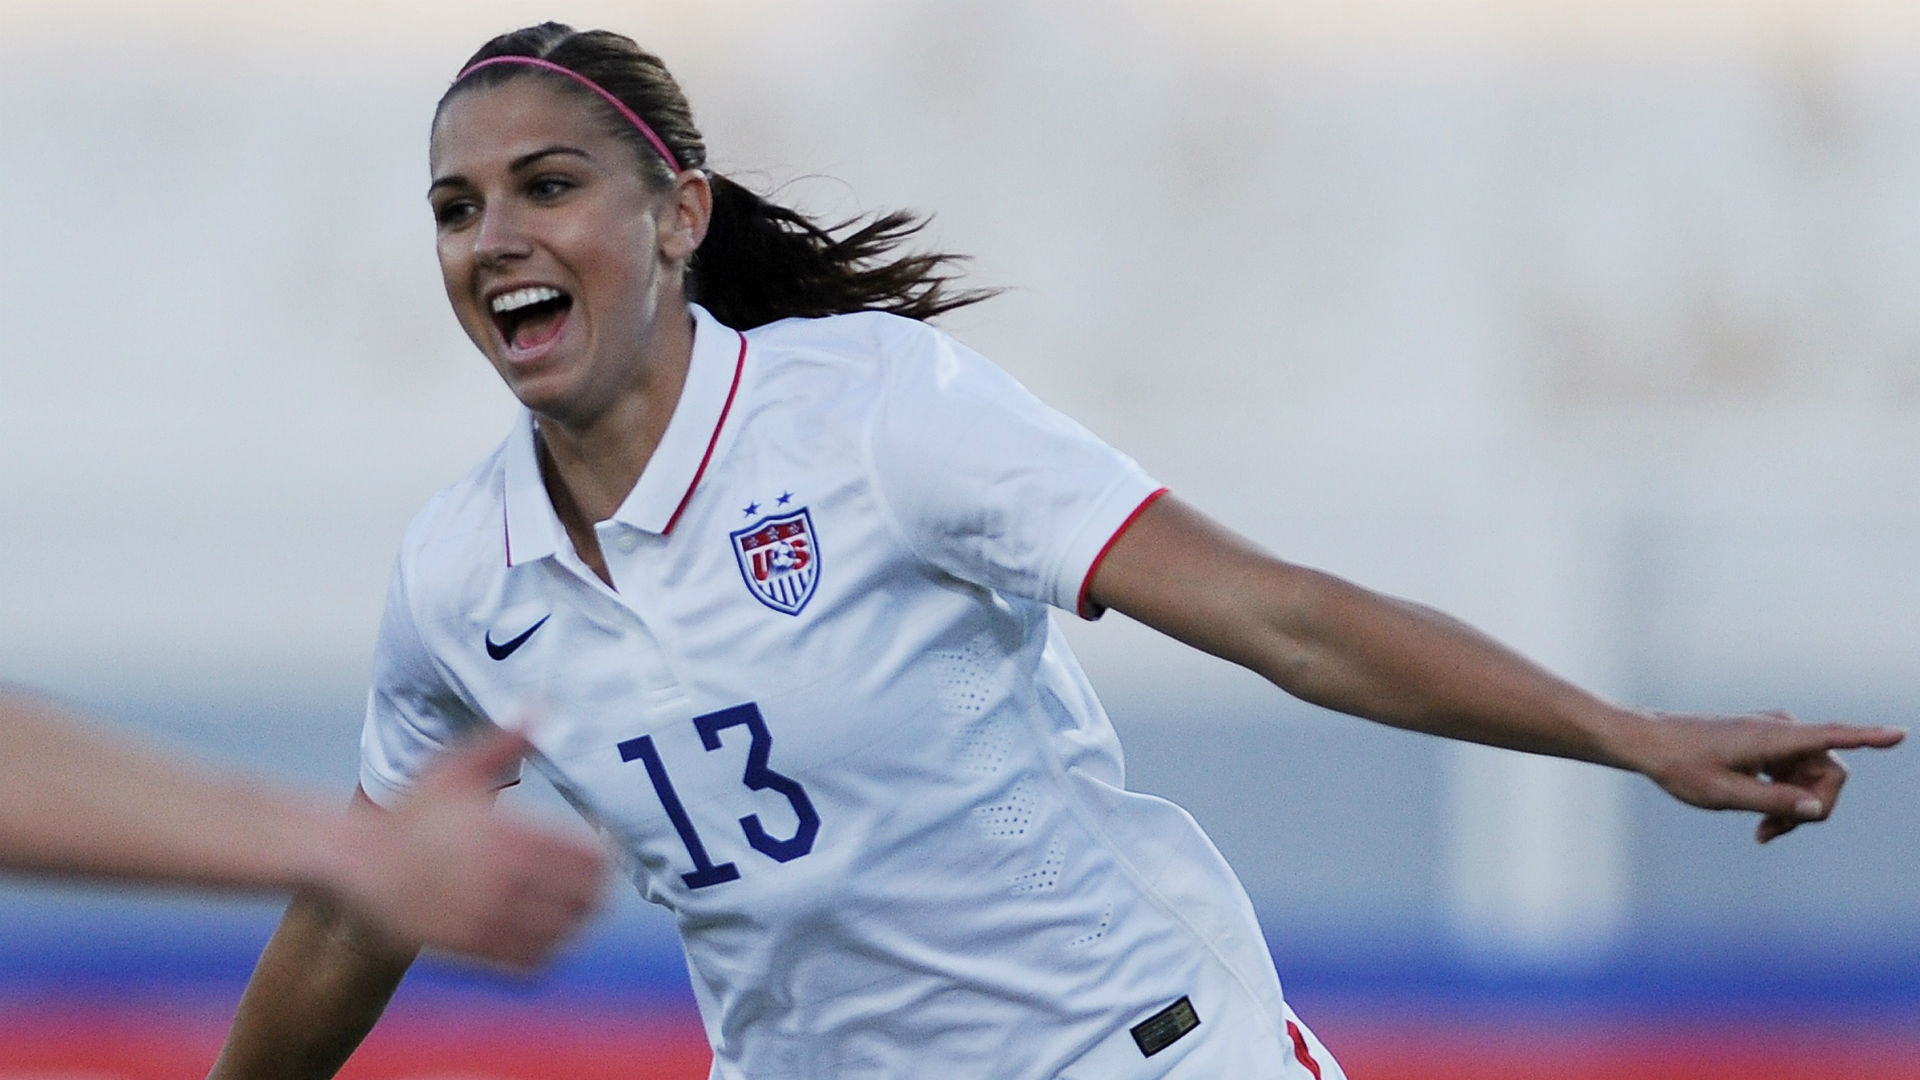 Alex Morgan hd wallpaper for pc